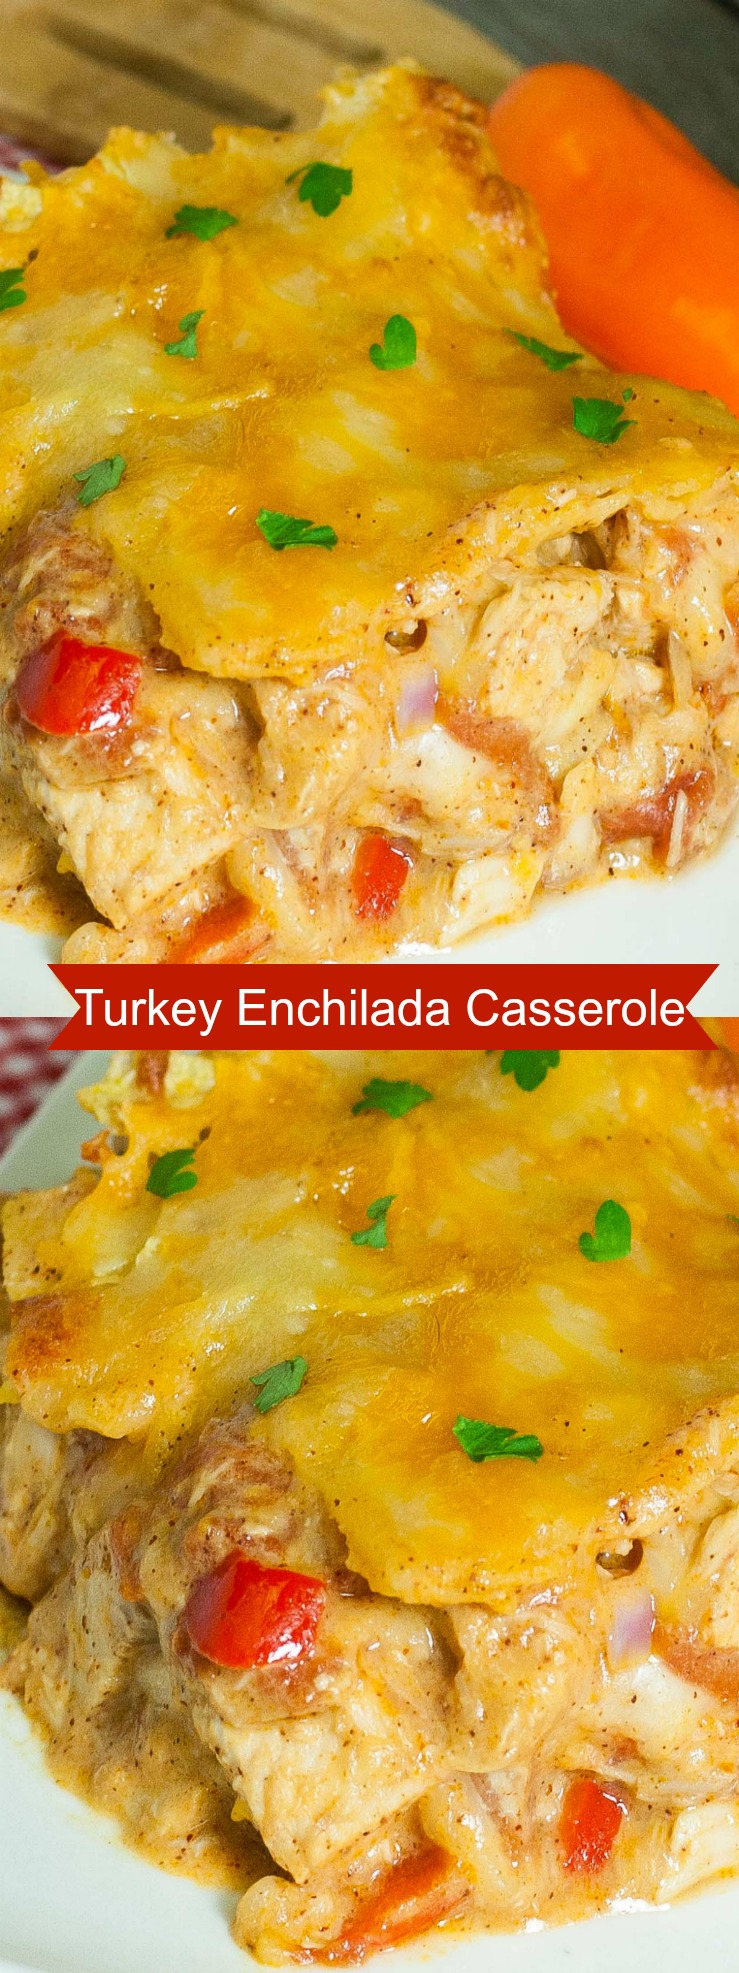 Turkey Enchilada Casserole is a great recipe for using up leftover turkey. All the flavorful spices you use in enchiladas and yummy cheesy layers. via @artandthekitch